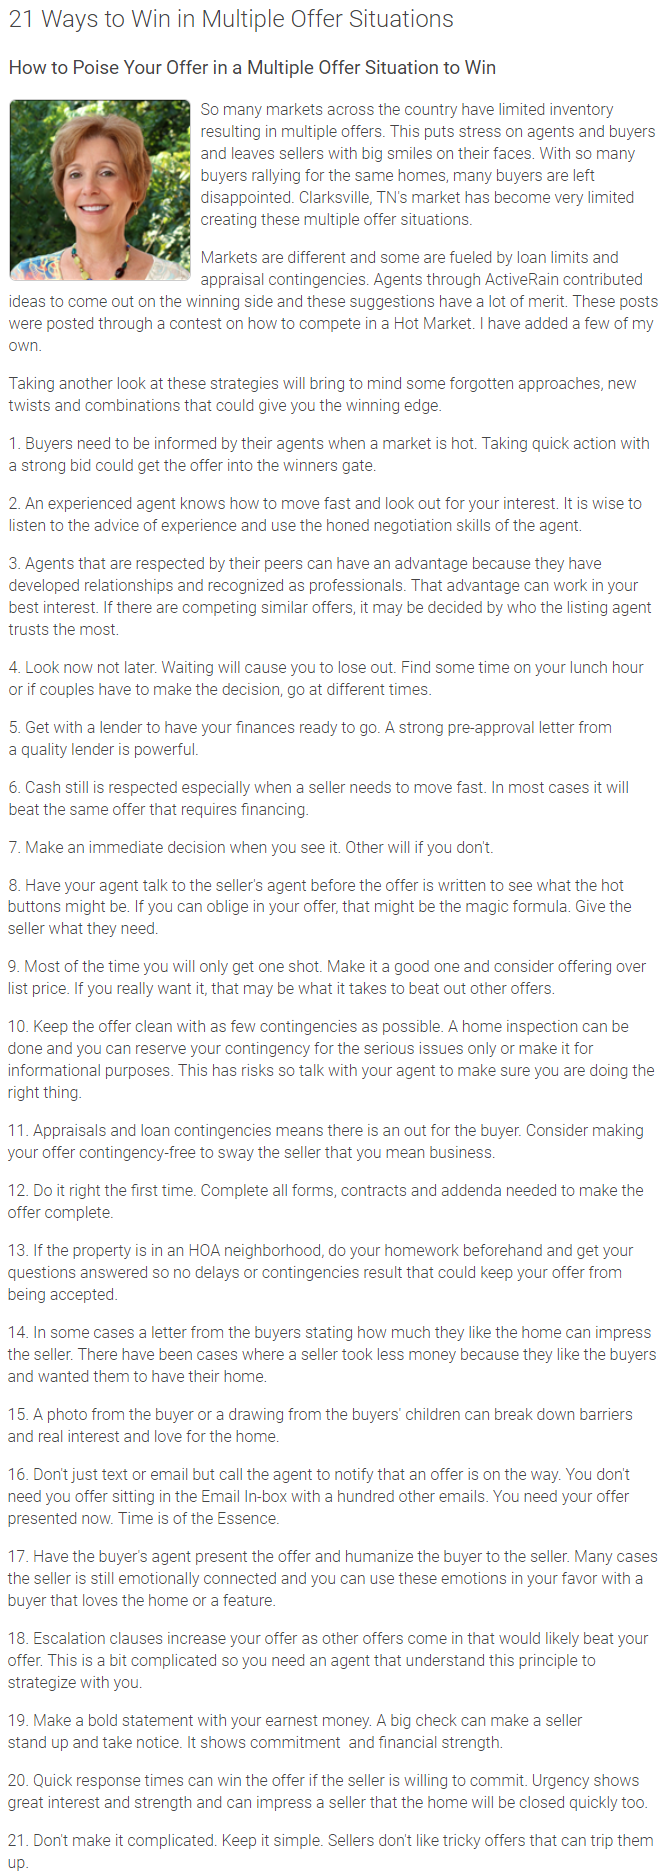 21 Ways to Win in Multiple Real Estate Offer Situations.png